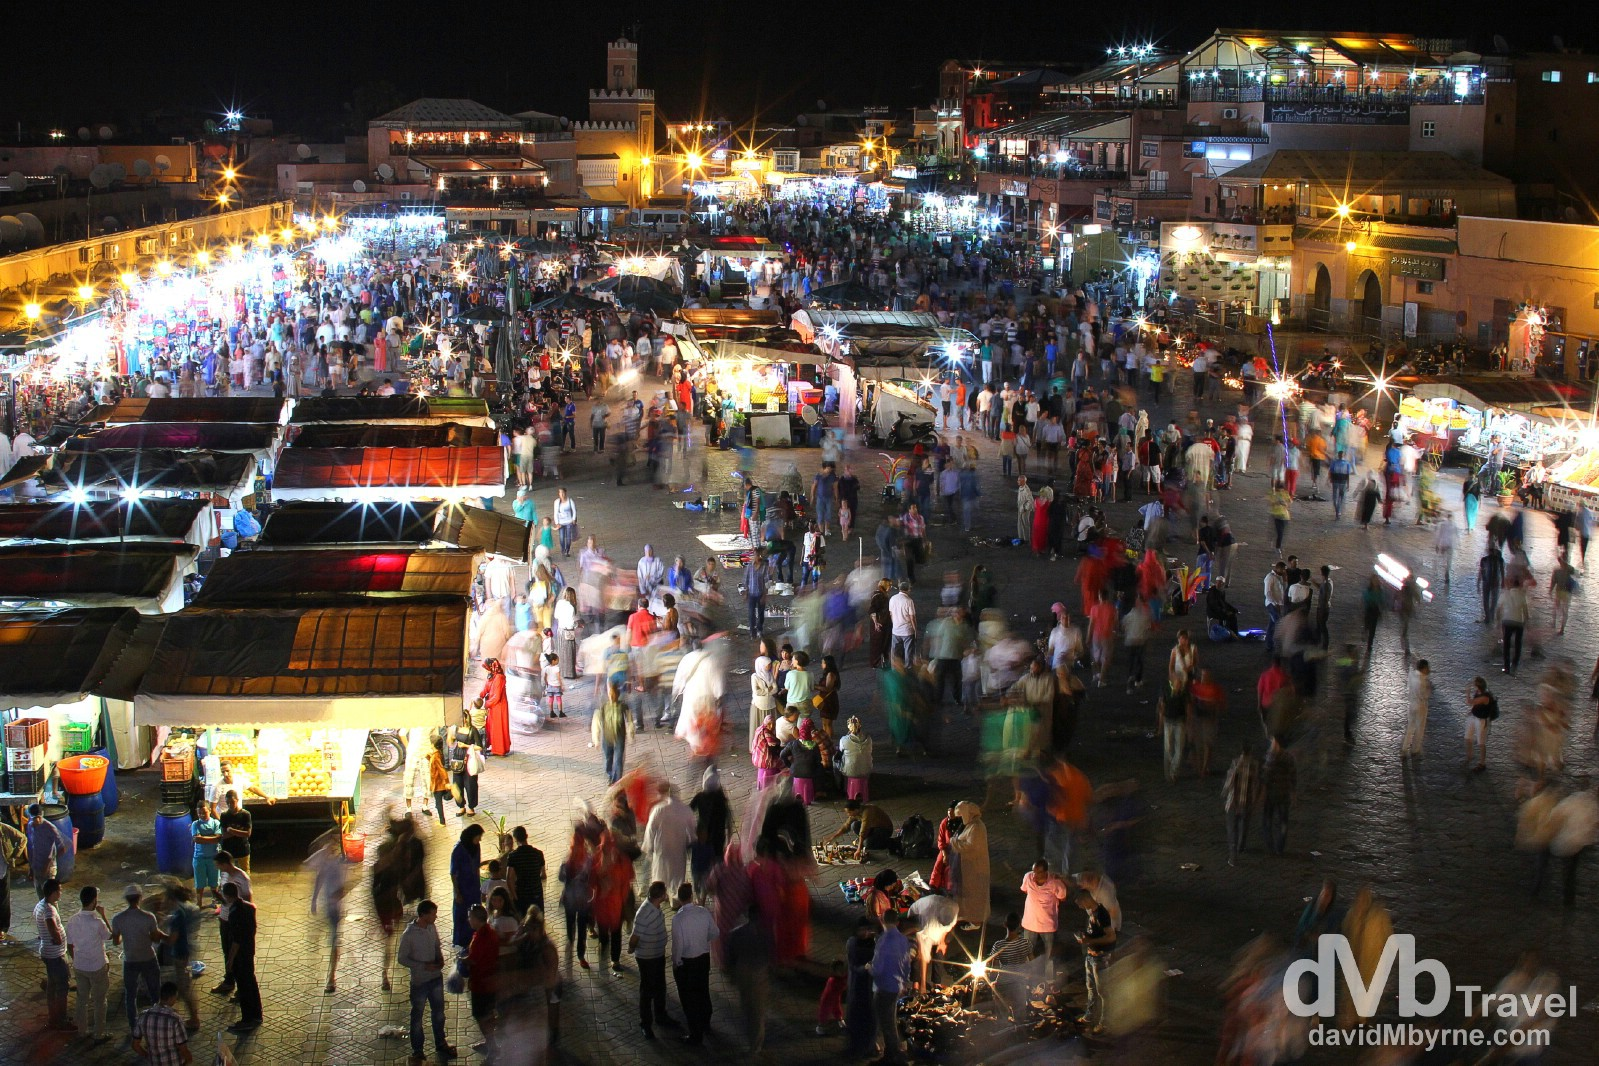 A section of the Djemma El-Fna in Marrakesh, Morocco, as seen from the veranda of the Café du Grand Balcon. May 11th, 2014.